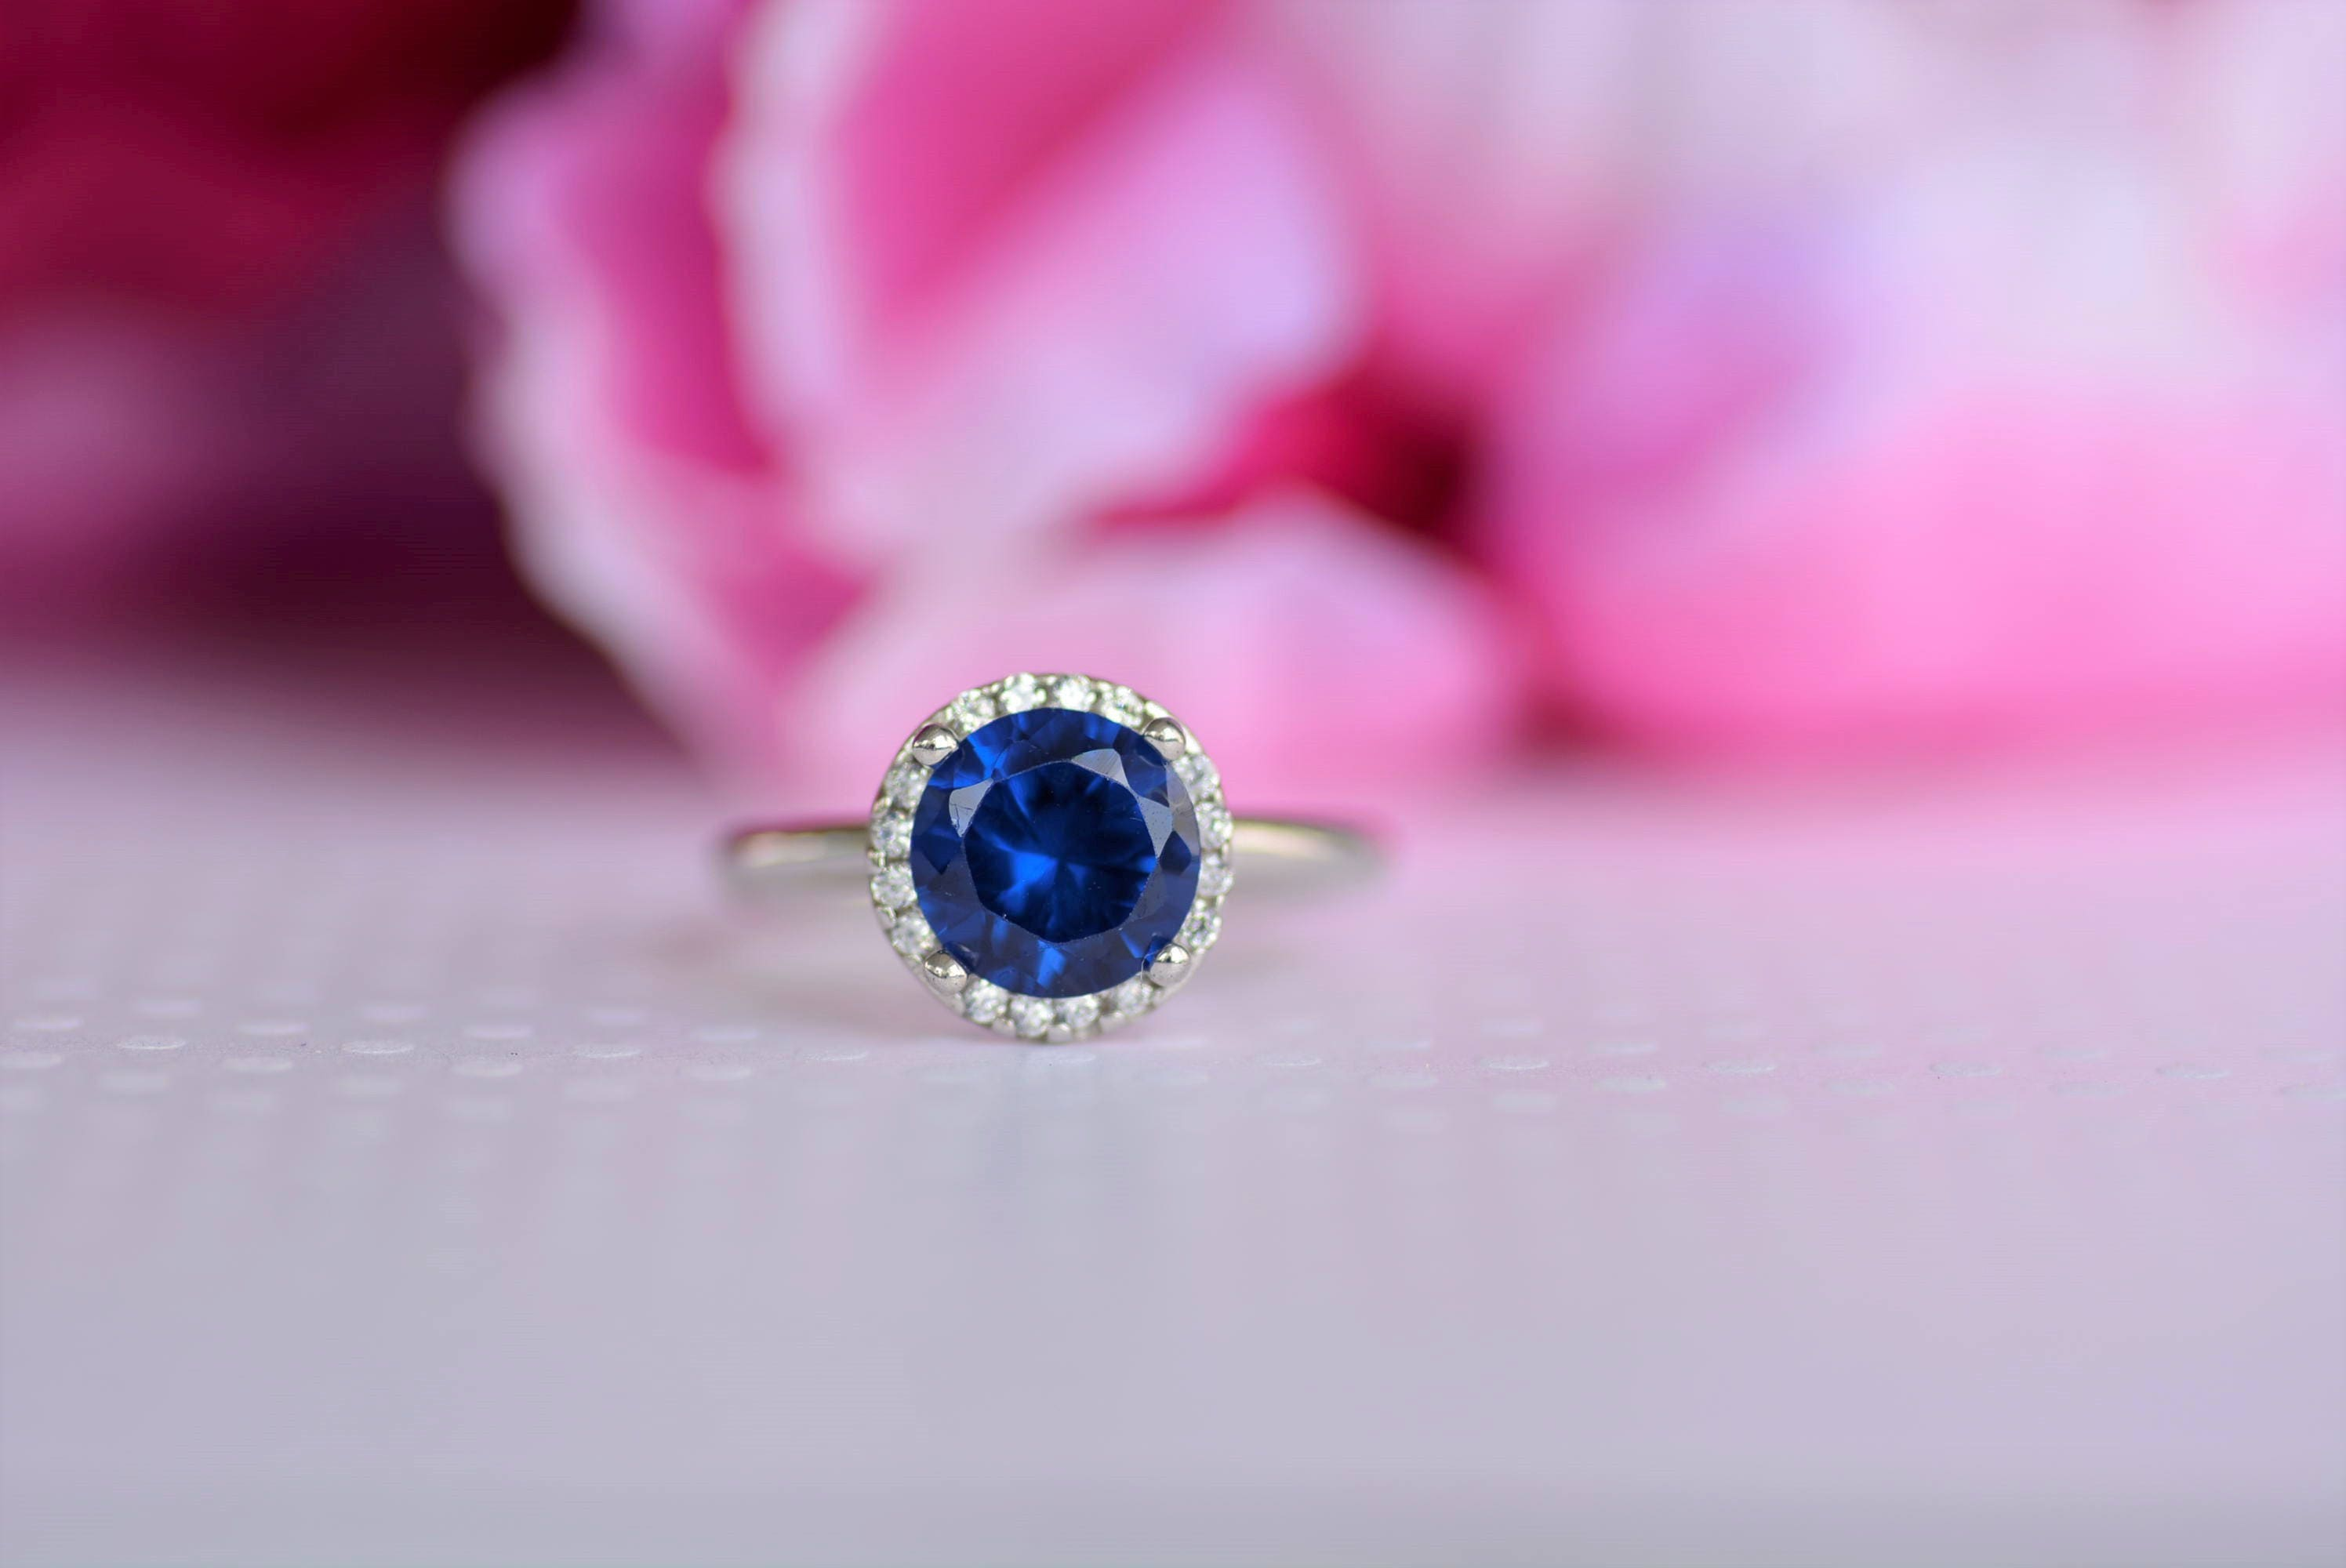 Sterling Silver Blue Sapphire Cz Ring. September Birthstone | Etsy